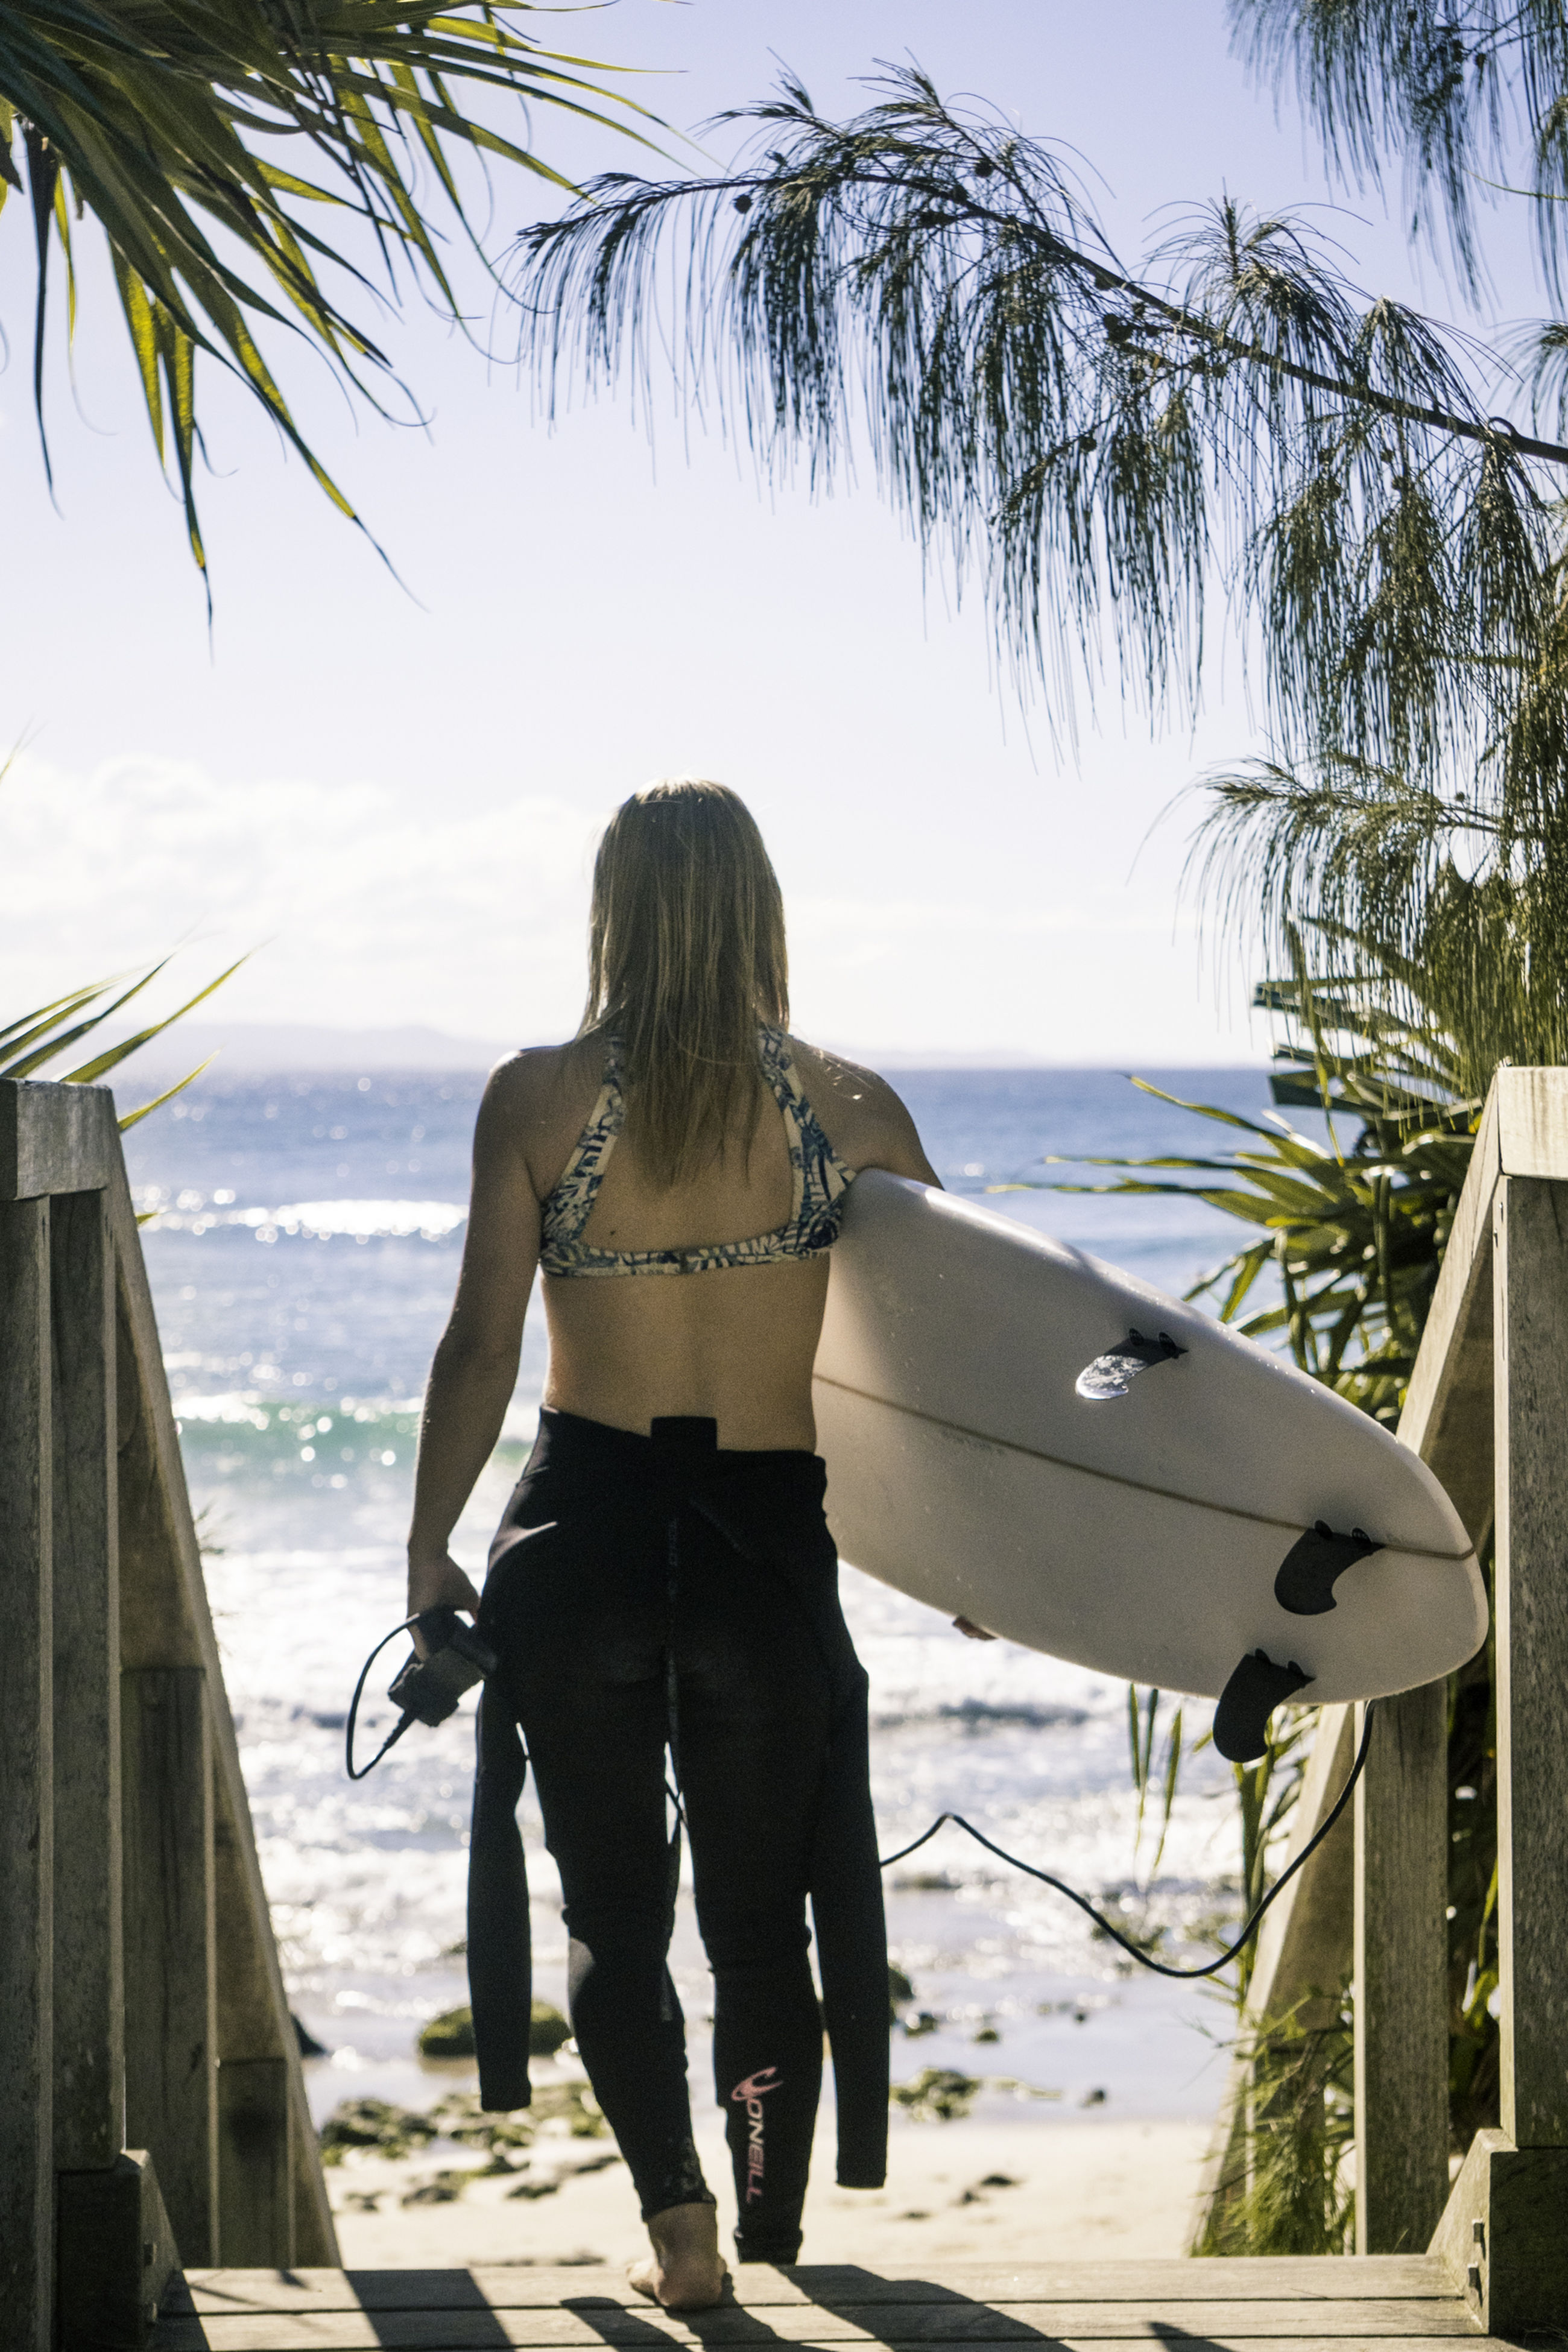 rear view, sea, beach, one person, standing, palm tree, day, outdoors, carrying, leisure activity, horizon over water, real people, nature, vacations, lifestyles, full length, women, sky, tree, nautical vessel, water, young adult, adult, people